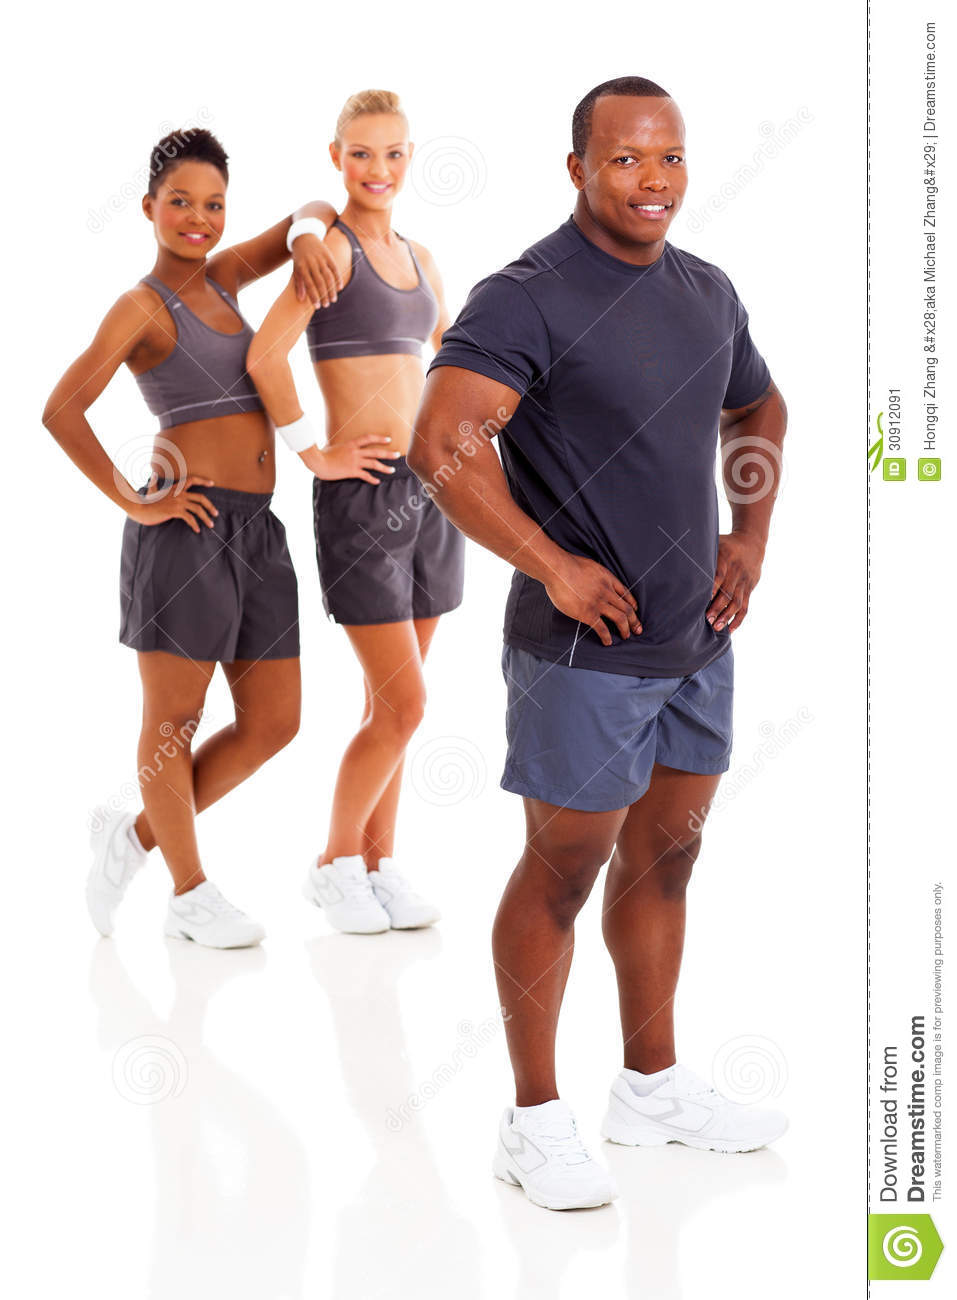 African Gym Instructor Stock Image - Image: 30912091